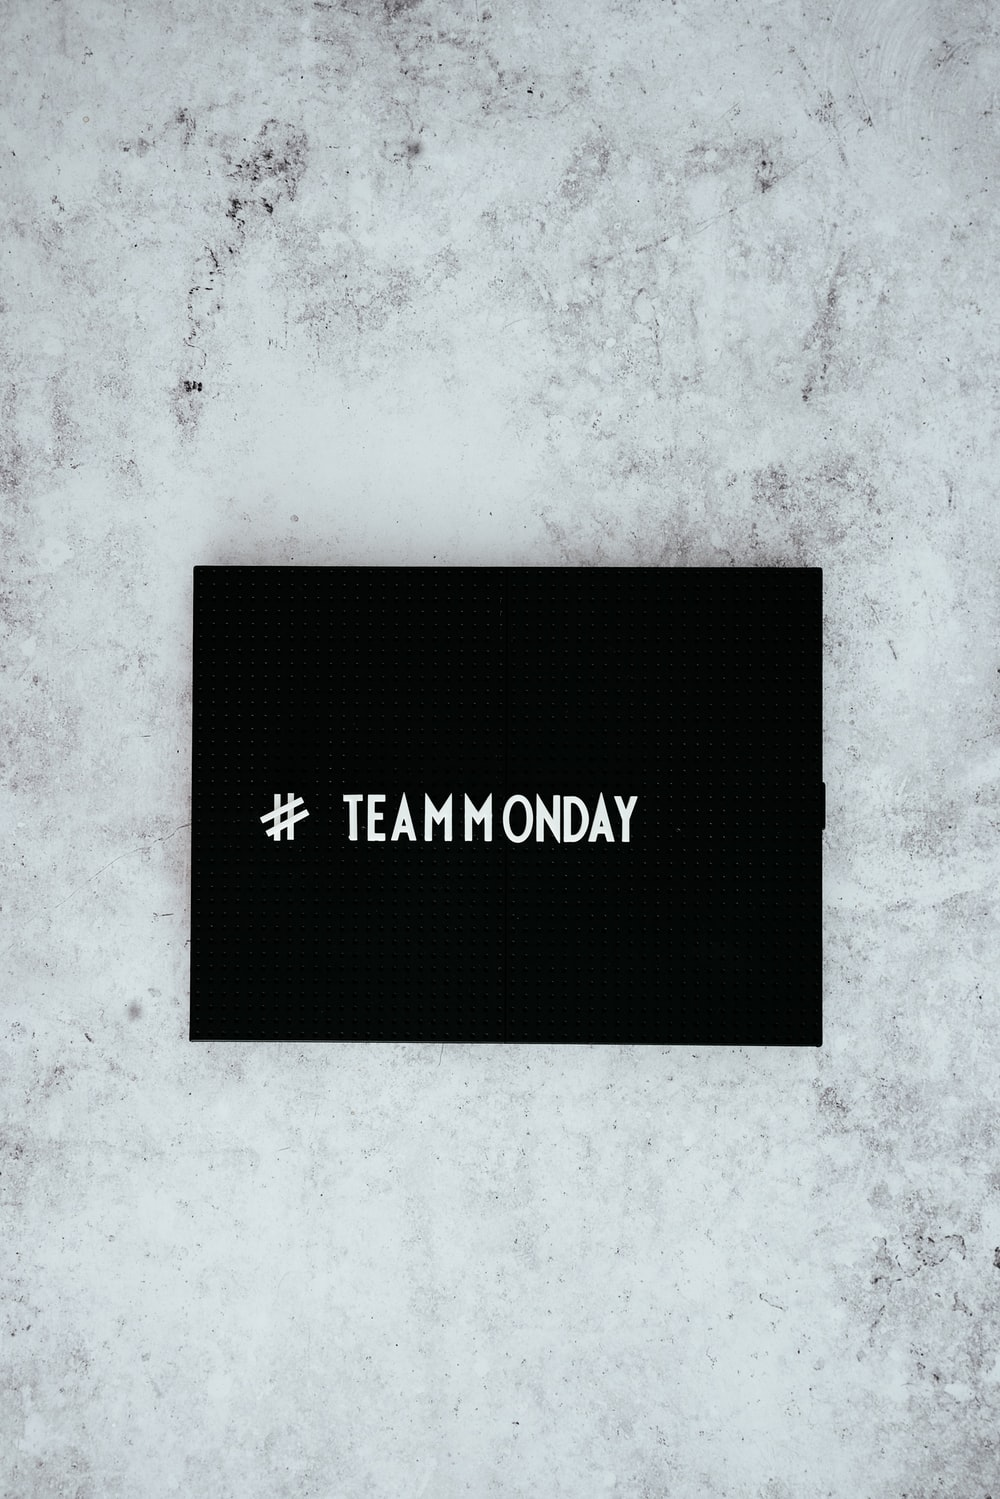 #team monday text overlay on black background